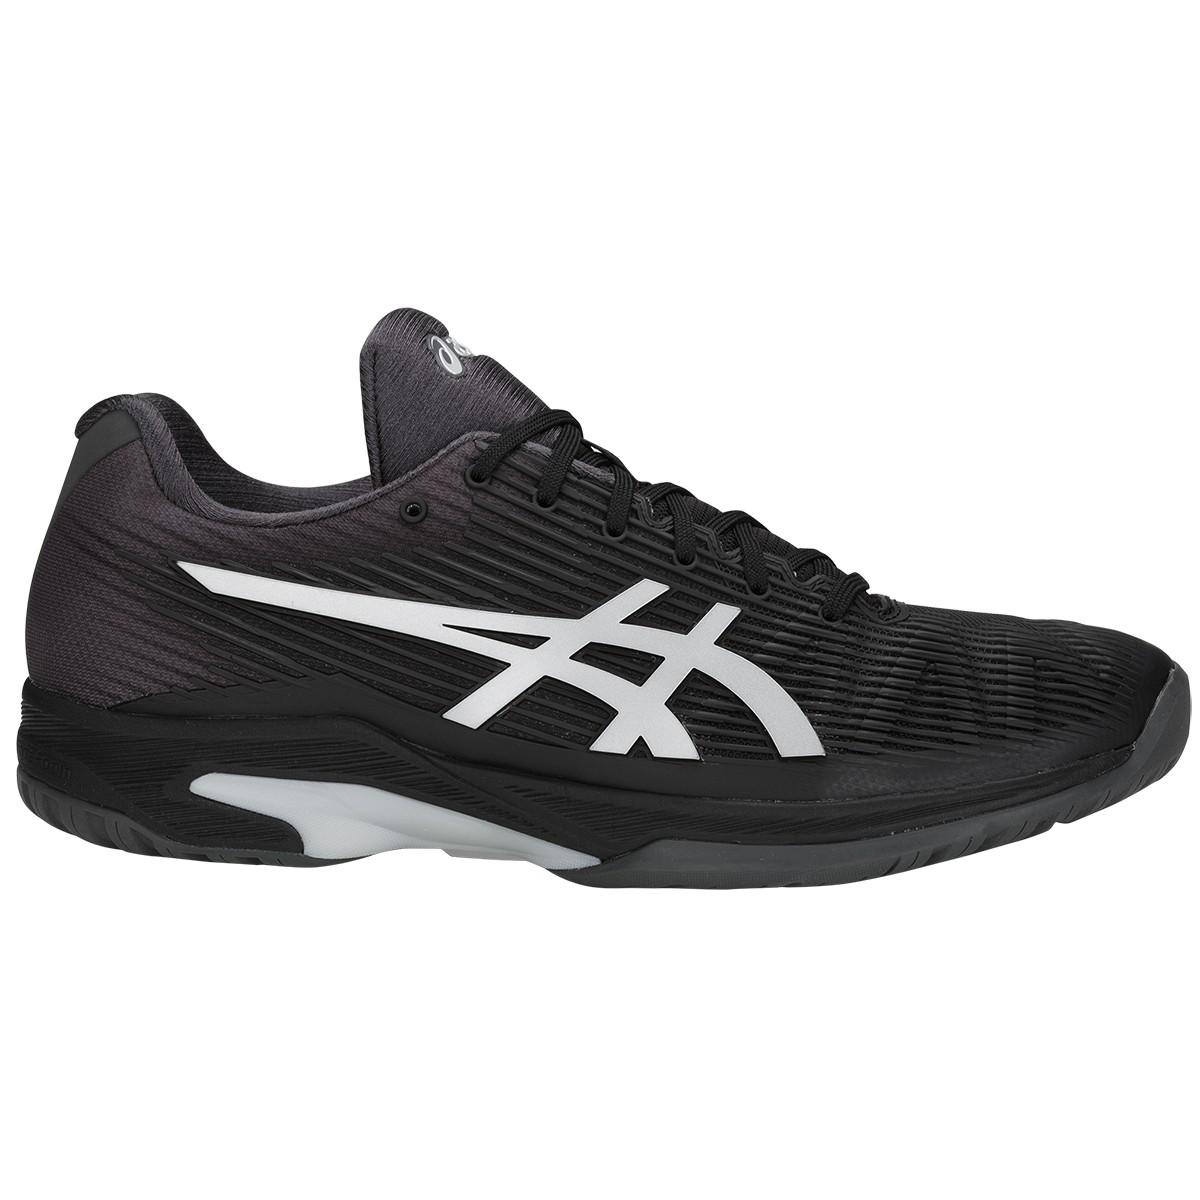 CHAUSSURES ASICS SOLUTION SPEED FF TOUTES SURFACES ASICS